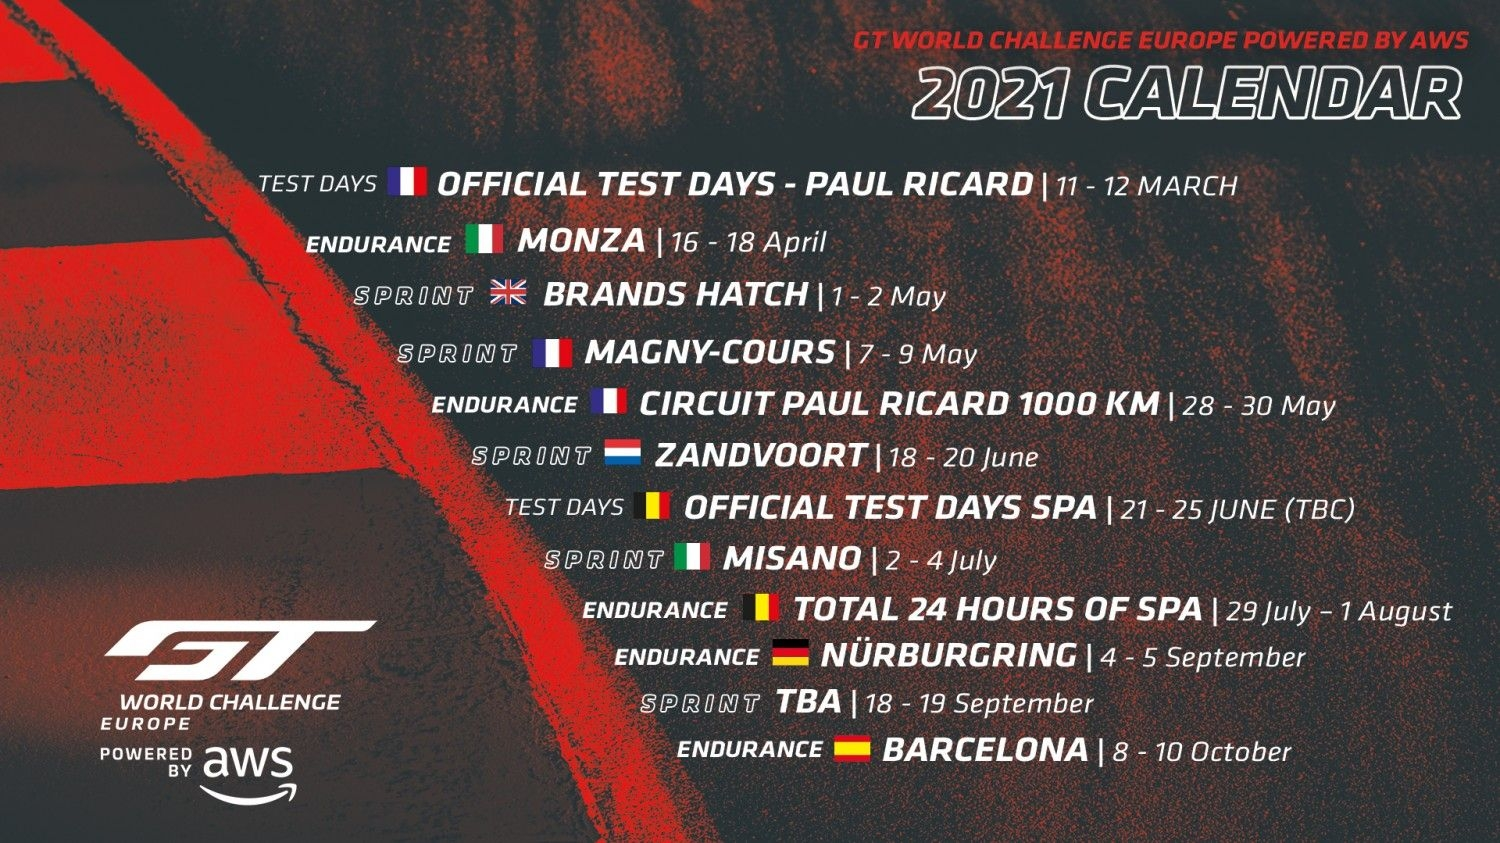 Further Developments Confirmed For 2021 Calendar With Magny